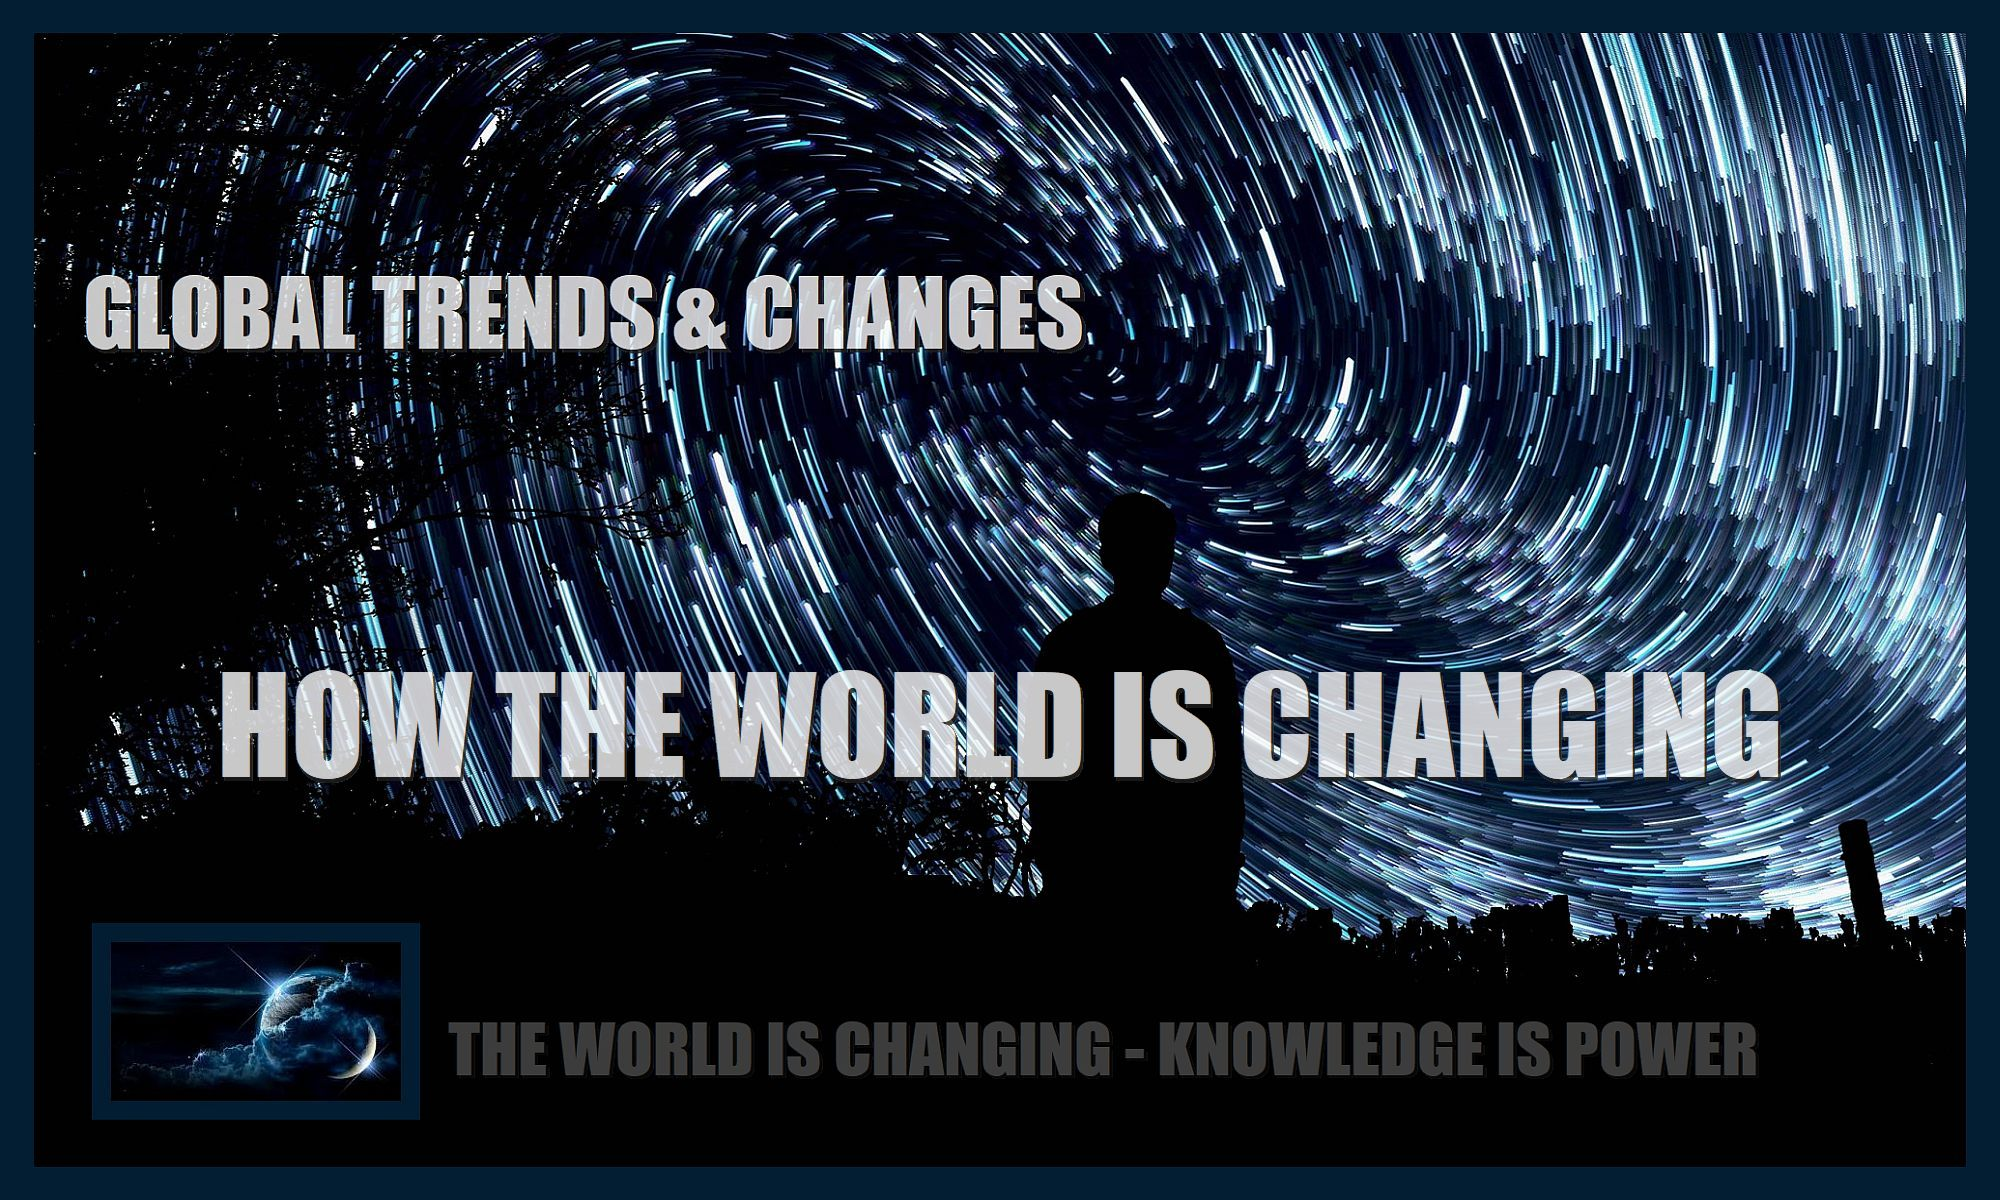 image-shows-how-is-thinking-changing-world-wide-what-are-the-metaphysical-global-trends-philosophical-religious-spiritual-shifts-in-beliefs